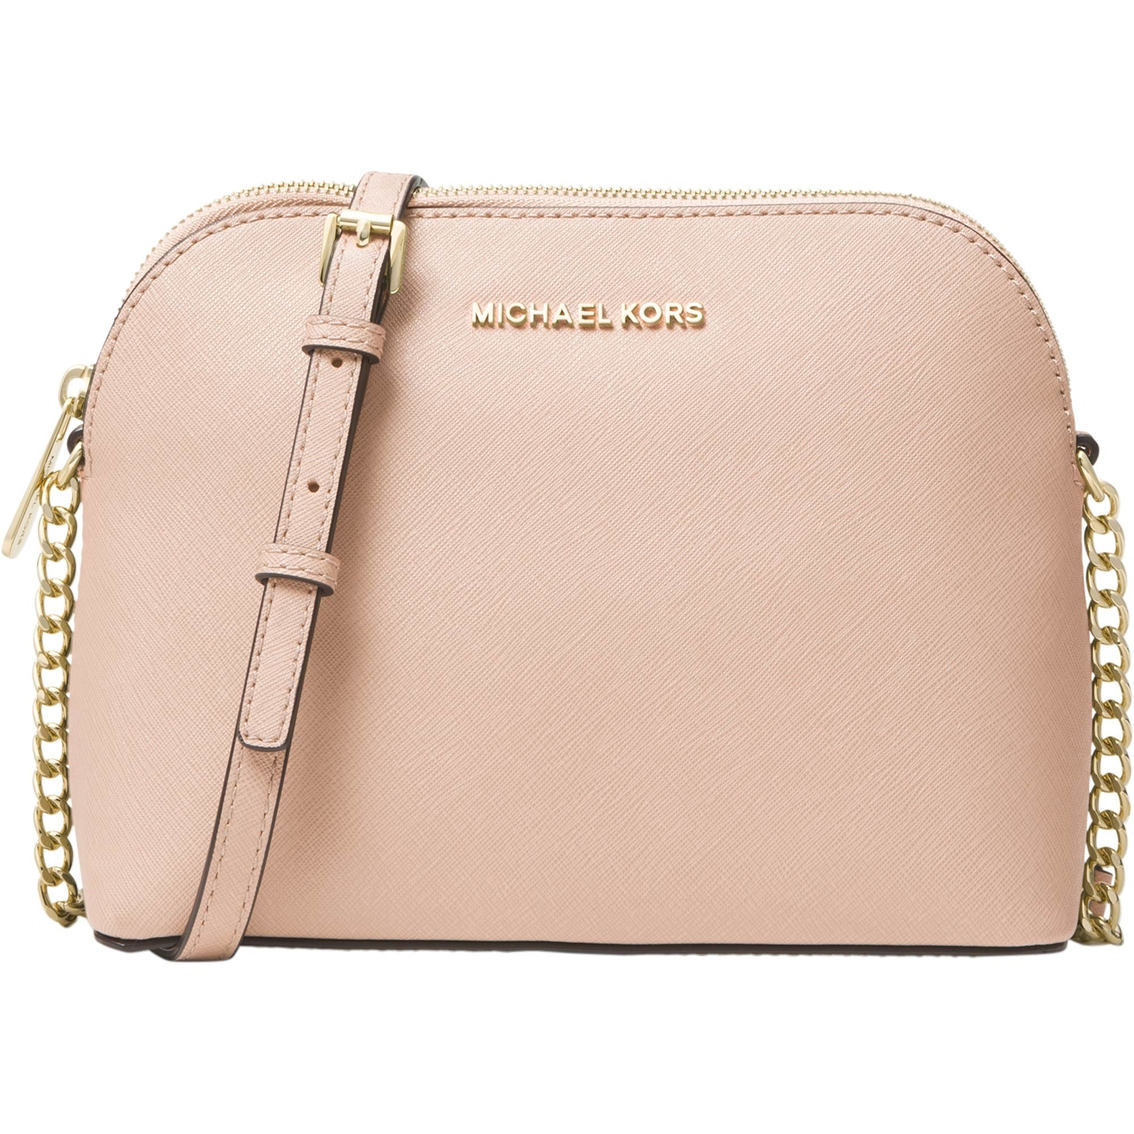 a7b1188b8267 Michael Kors Cindy Large Dome Crossbody | Handbags | Shop The Exchange